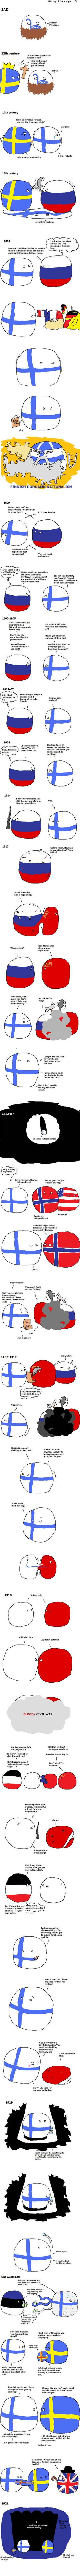 History of Finland part 1 / 4